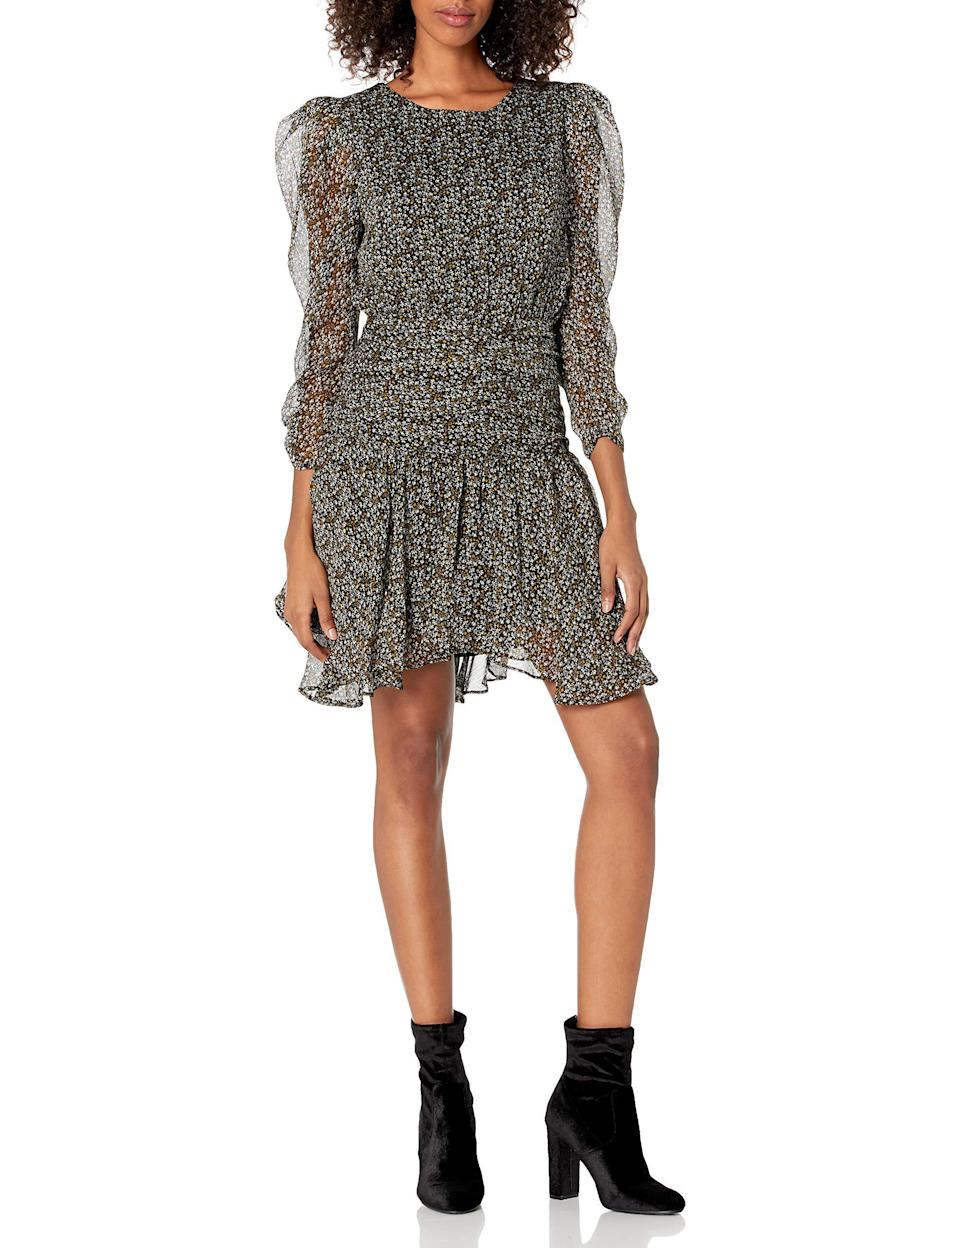 """<br><br><strong>ASTR The Label</strong> Savannah Mock Neck Long Sleeve Mini Dress, $, available at <a href=""""https://amzn.to/2SJNWIt"""" rel=""""nofollow noopener"""" target=""""_blank"""" data-ylk=""""slk:Amazon"""" class=""""link rapid-noclick-resp"""">Amazon</a>"""